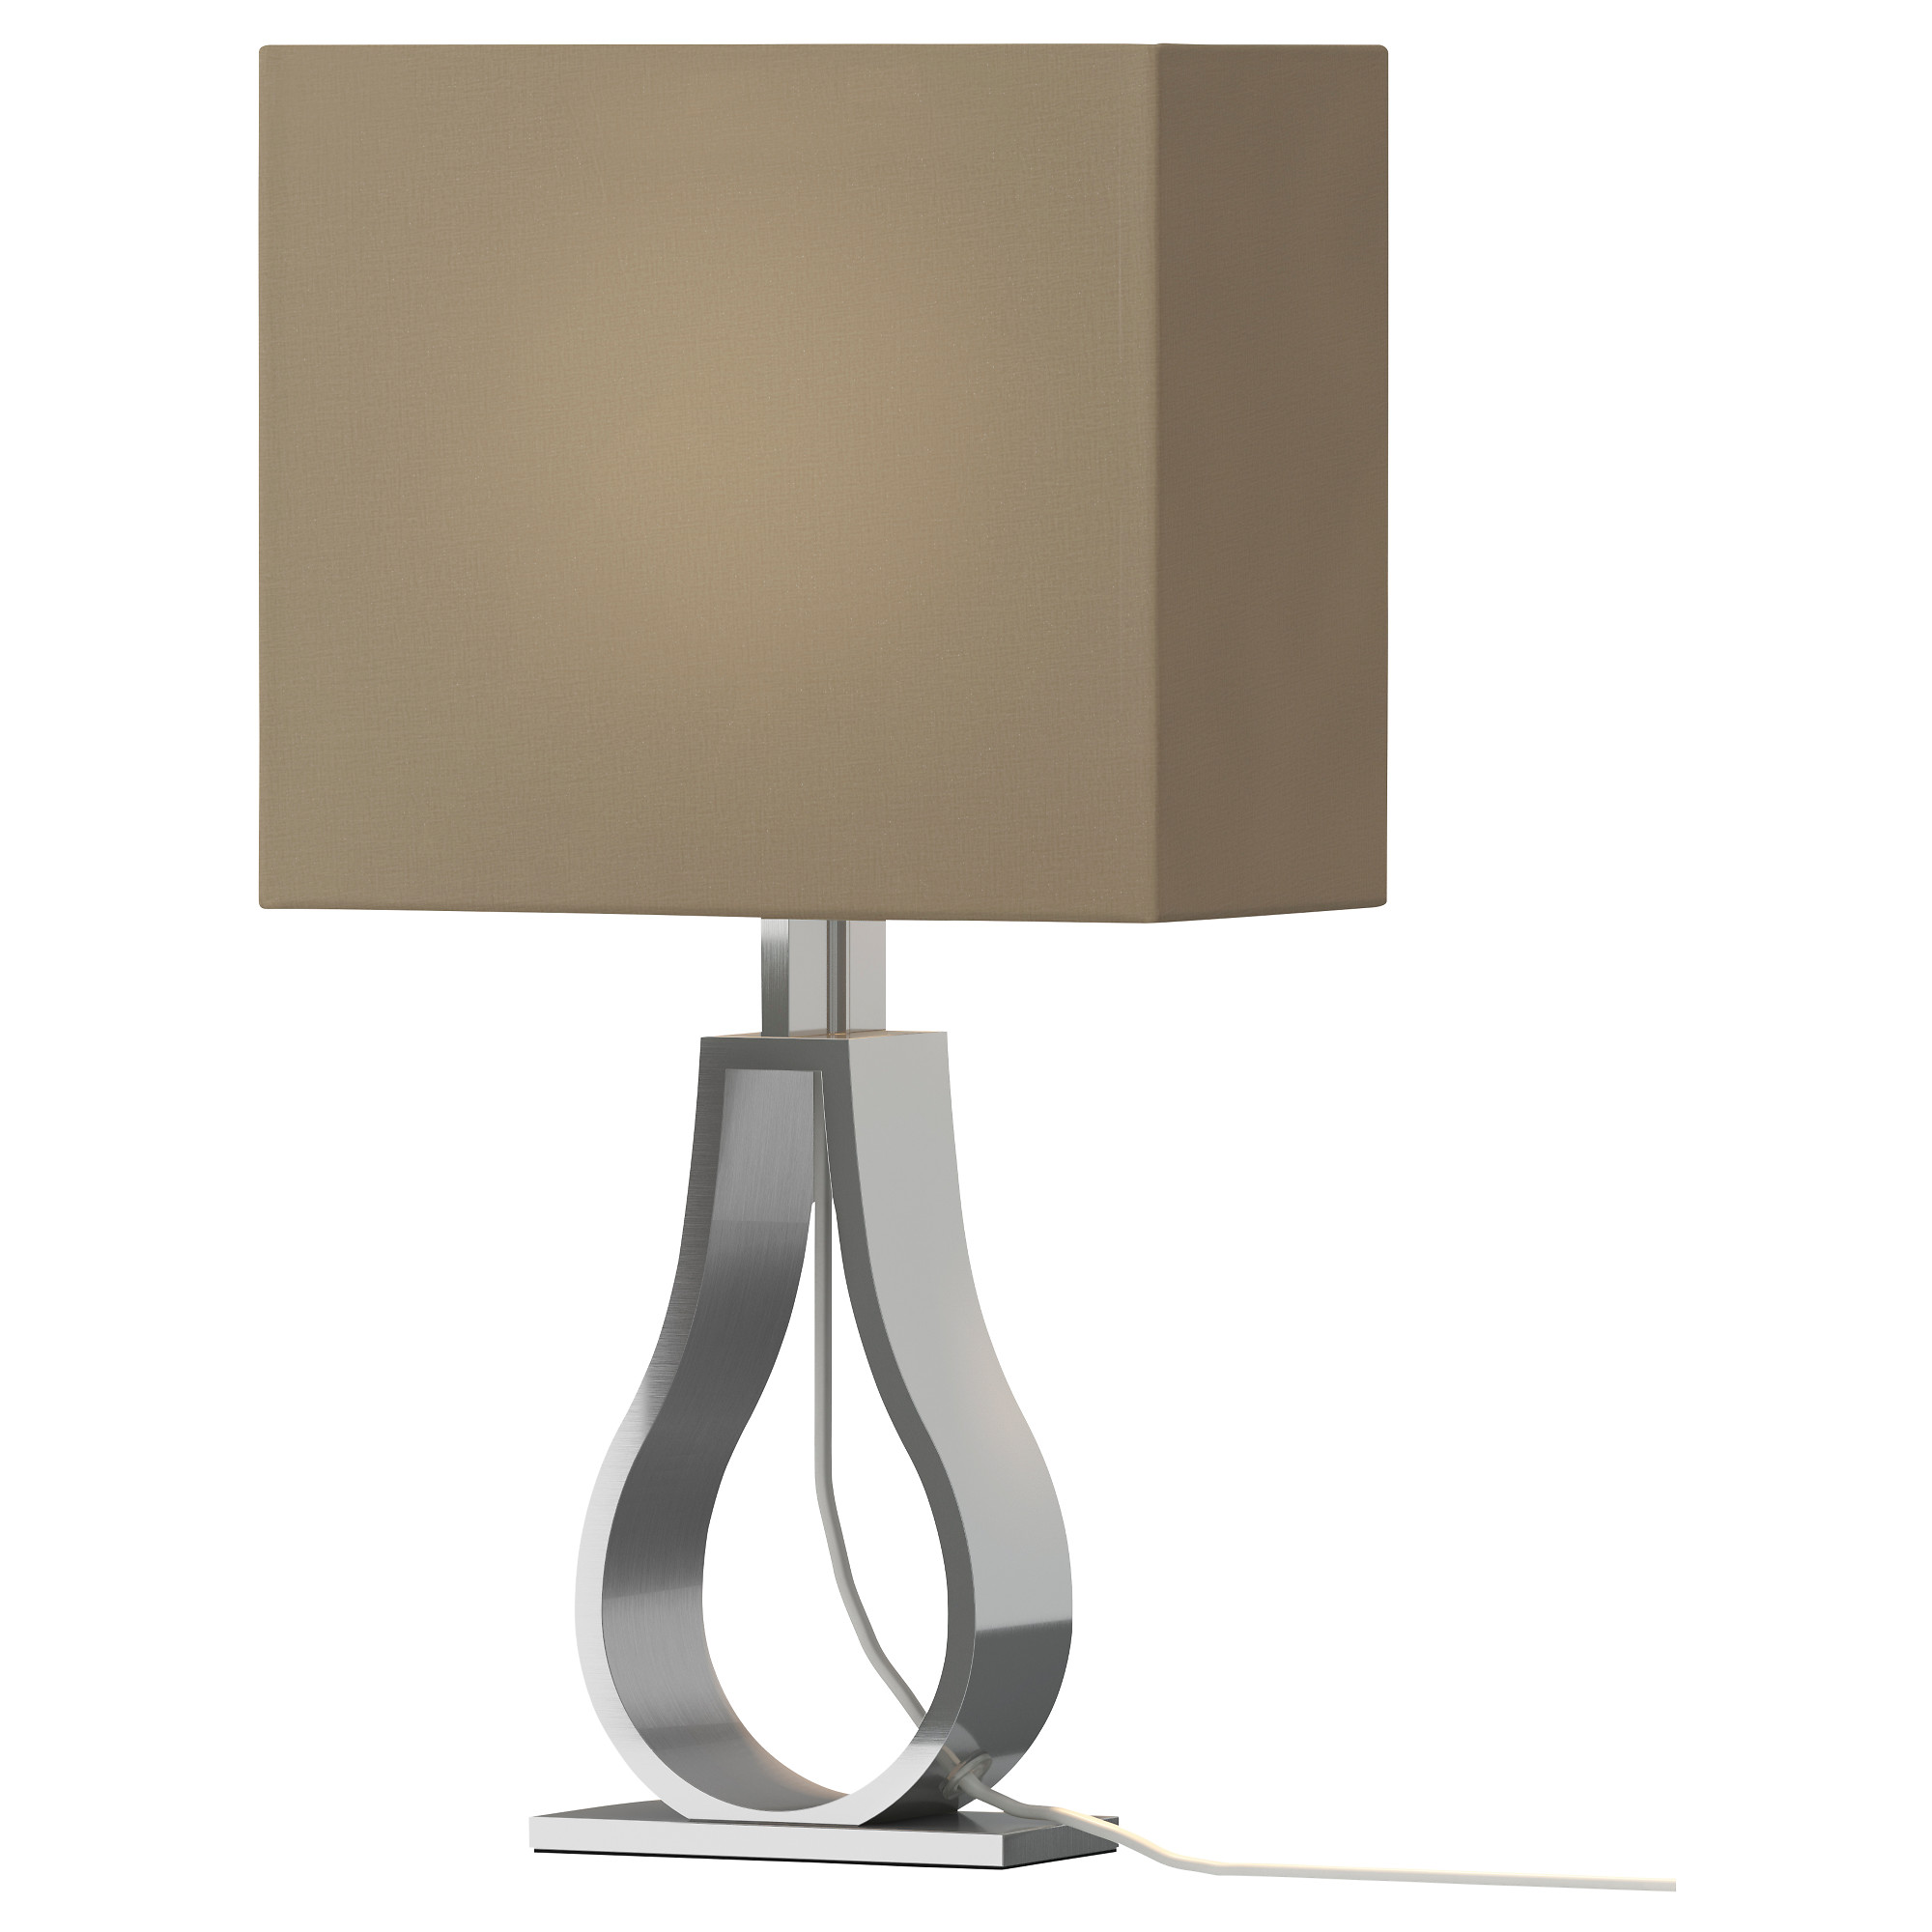 Modern Table Lamps Uk Modern Table Lamps To Complete The Look Of Modern Decor